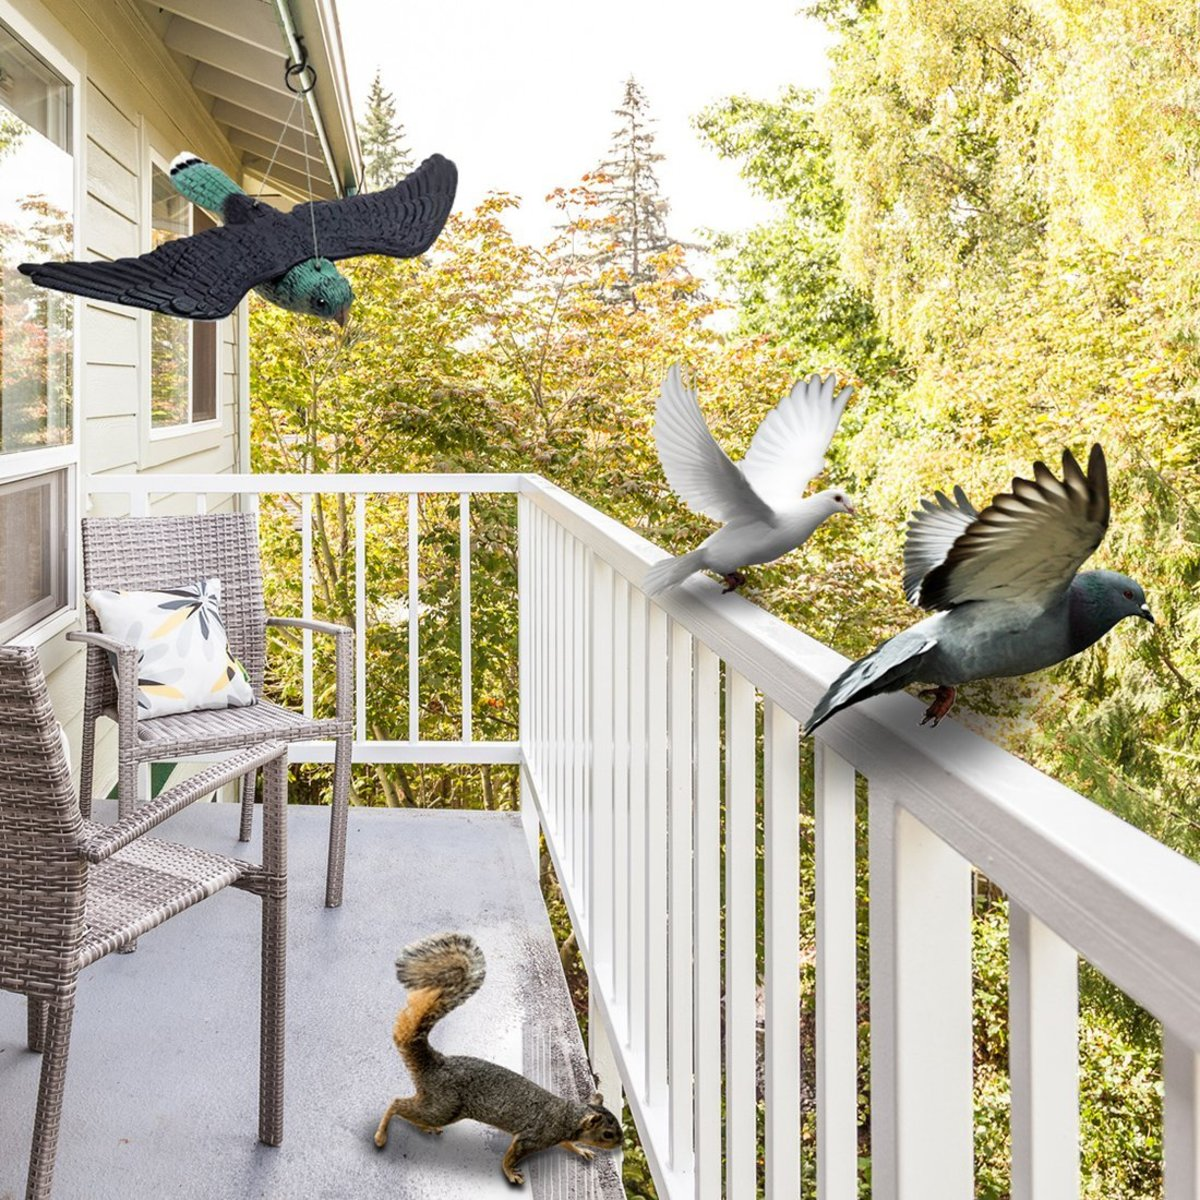 Scare Tactics To Keep Birds Off Patio